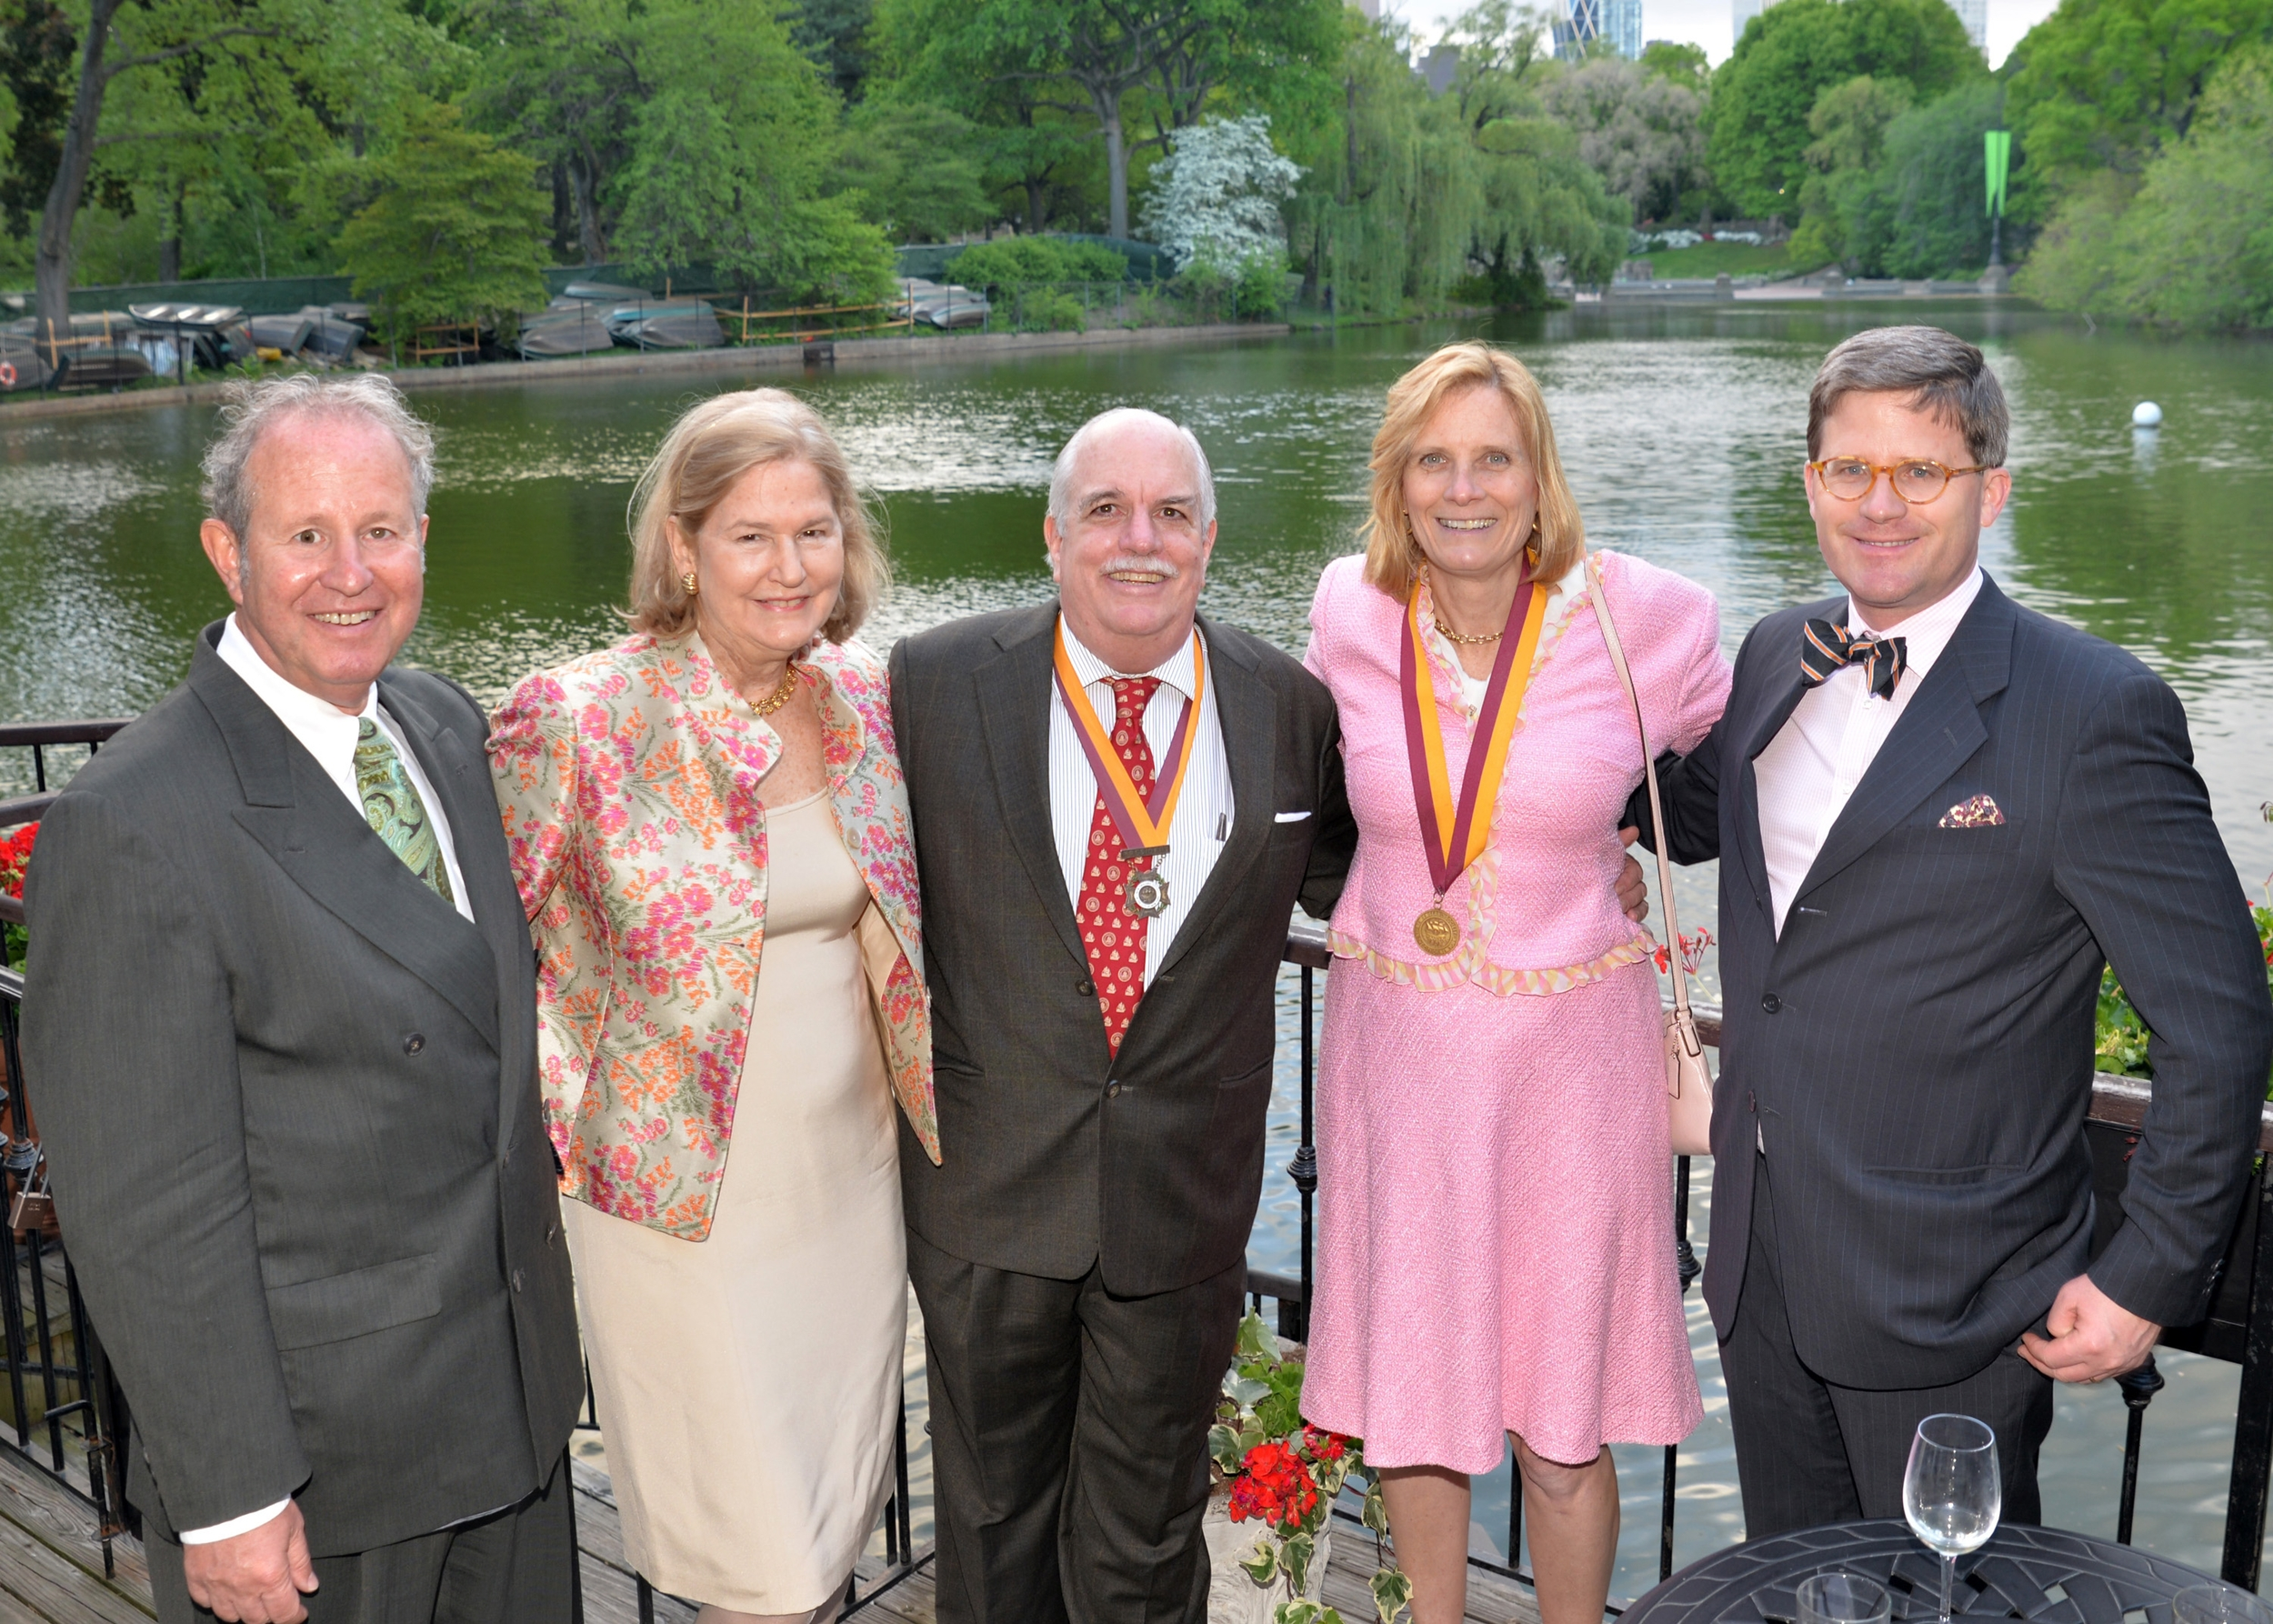 Founders' Day | May 13, 2015 | Loeb Boathouse at Central Park